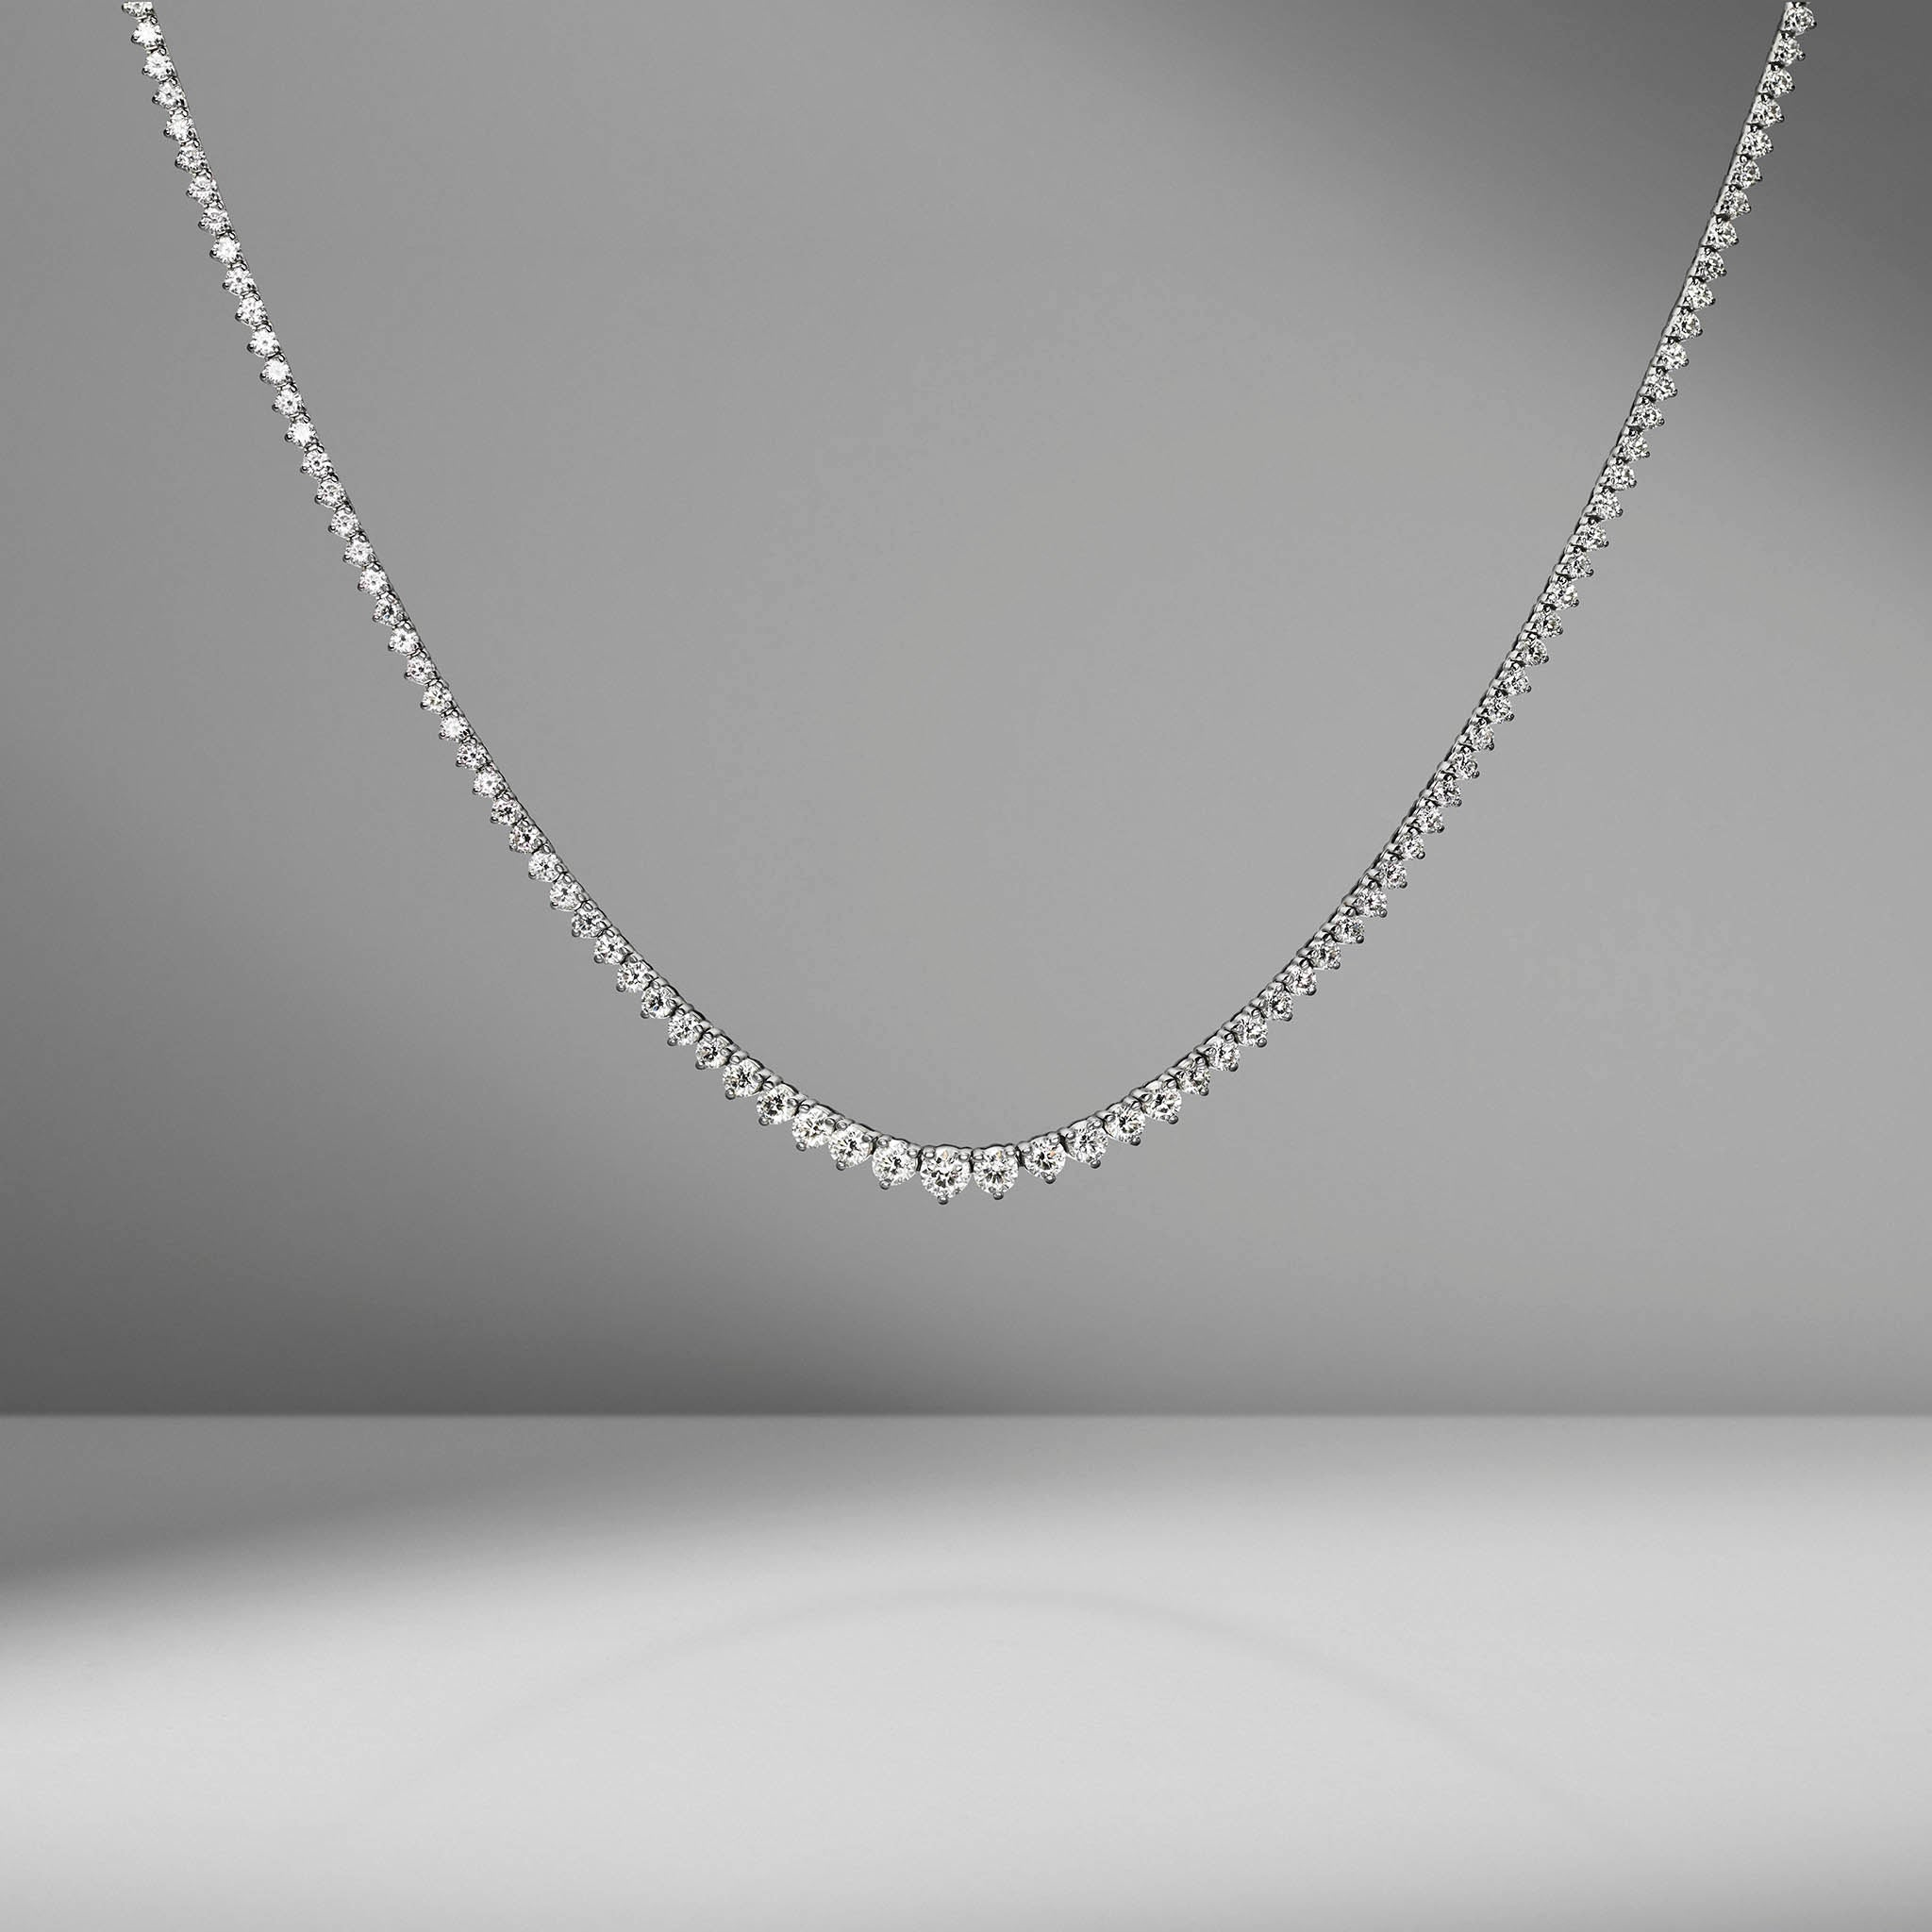 Small Graduated Diamond Necklace